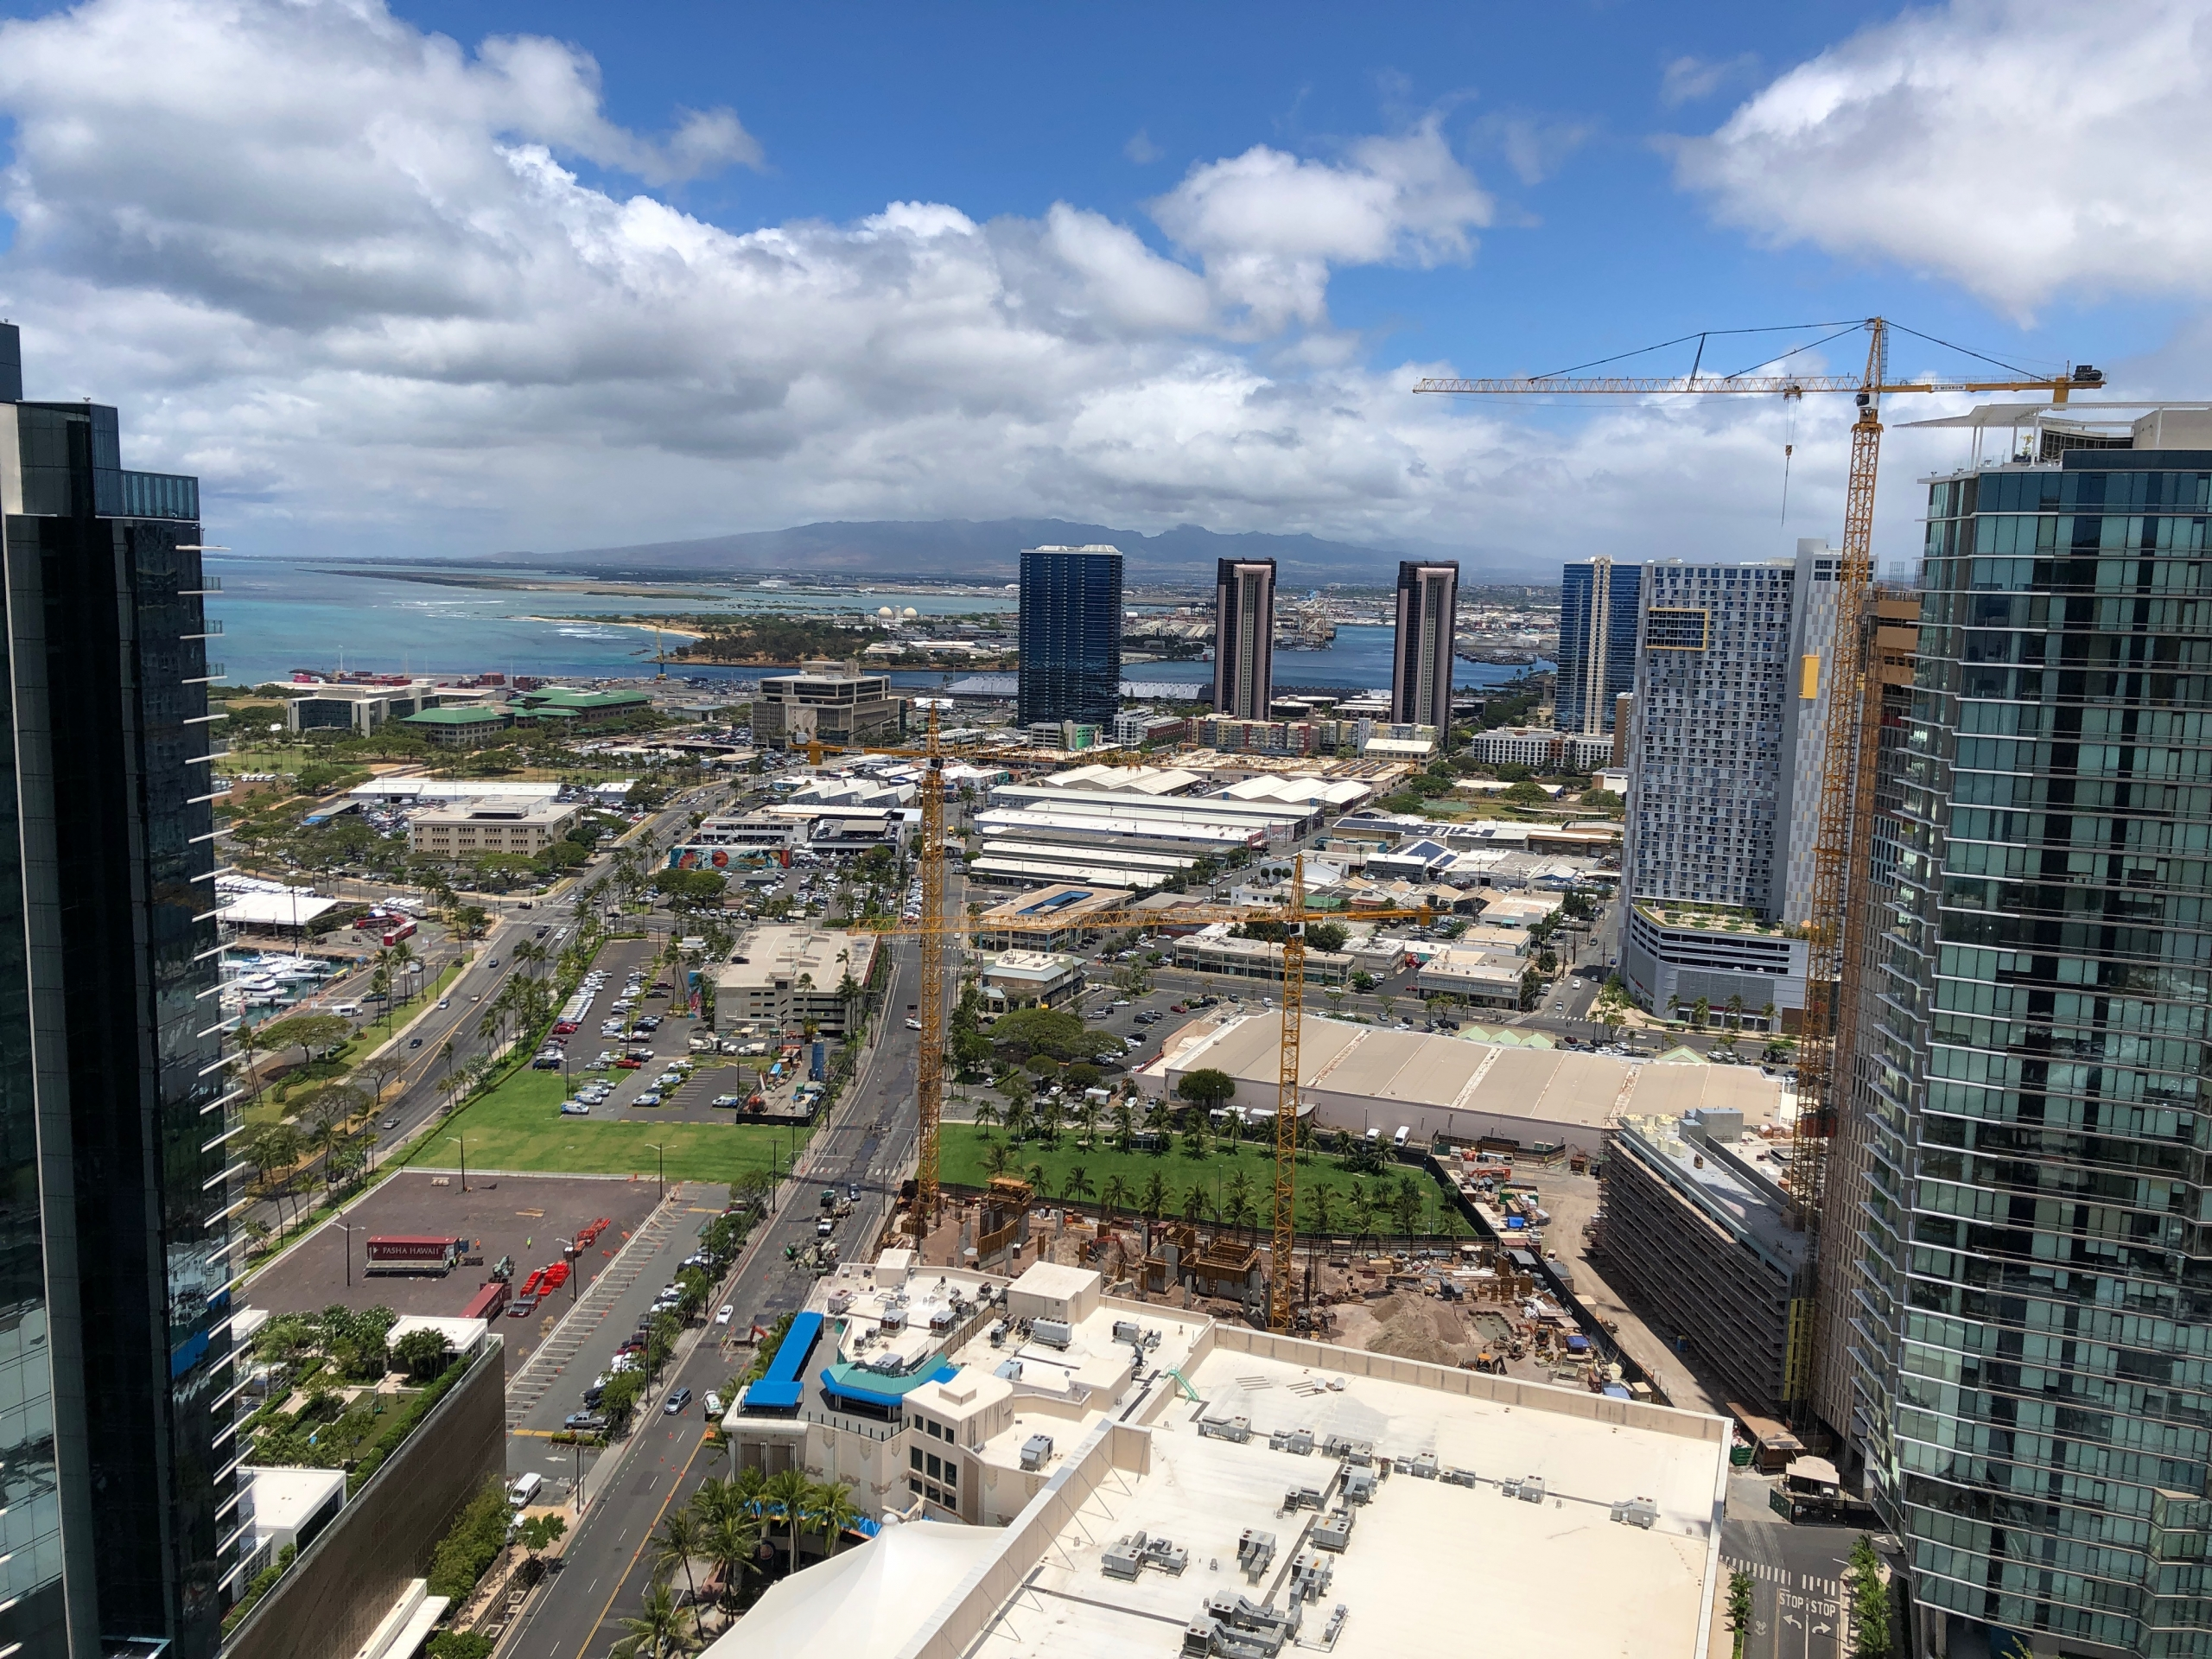 Ko'ula condo construction update may 21,2 020